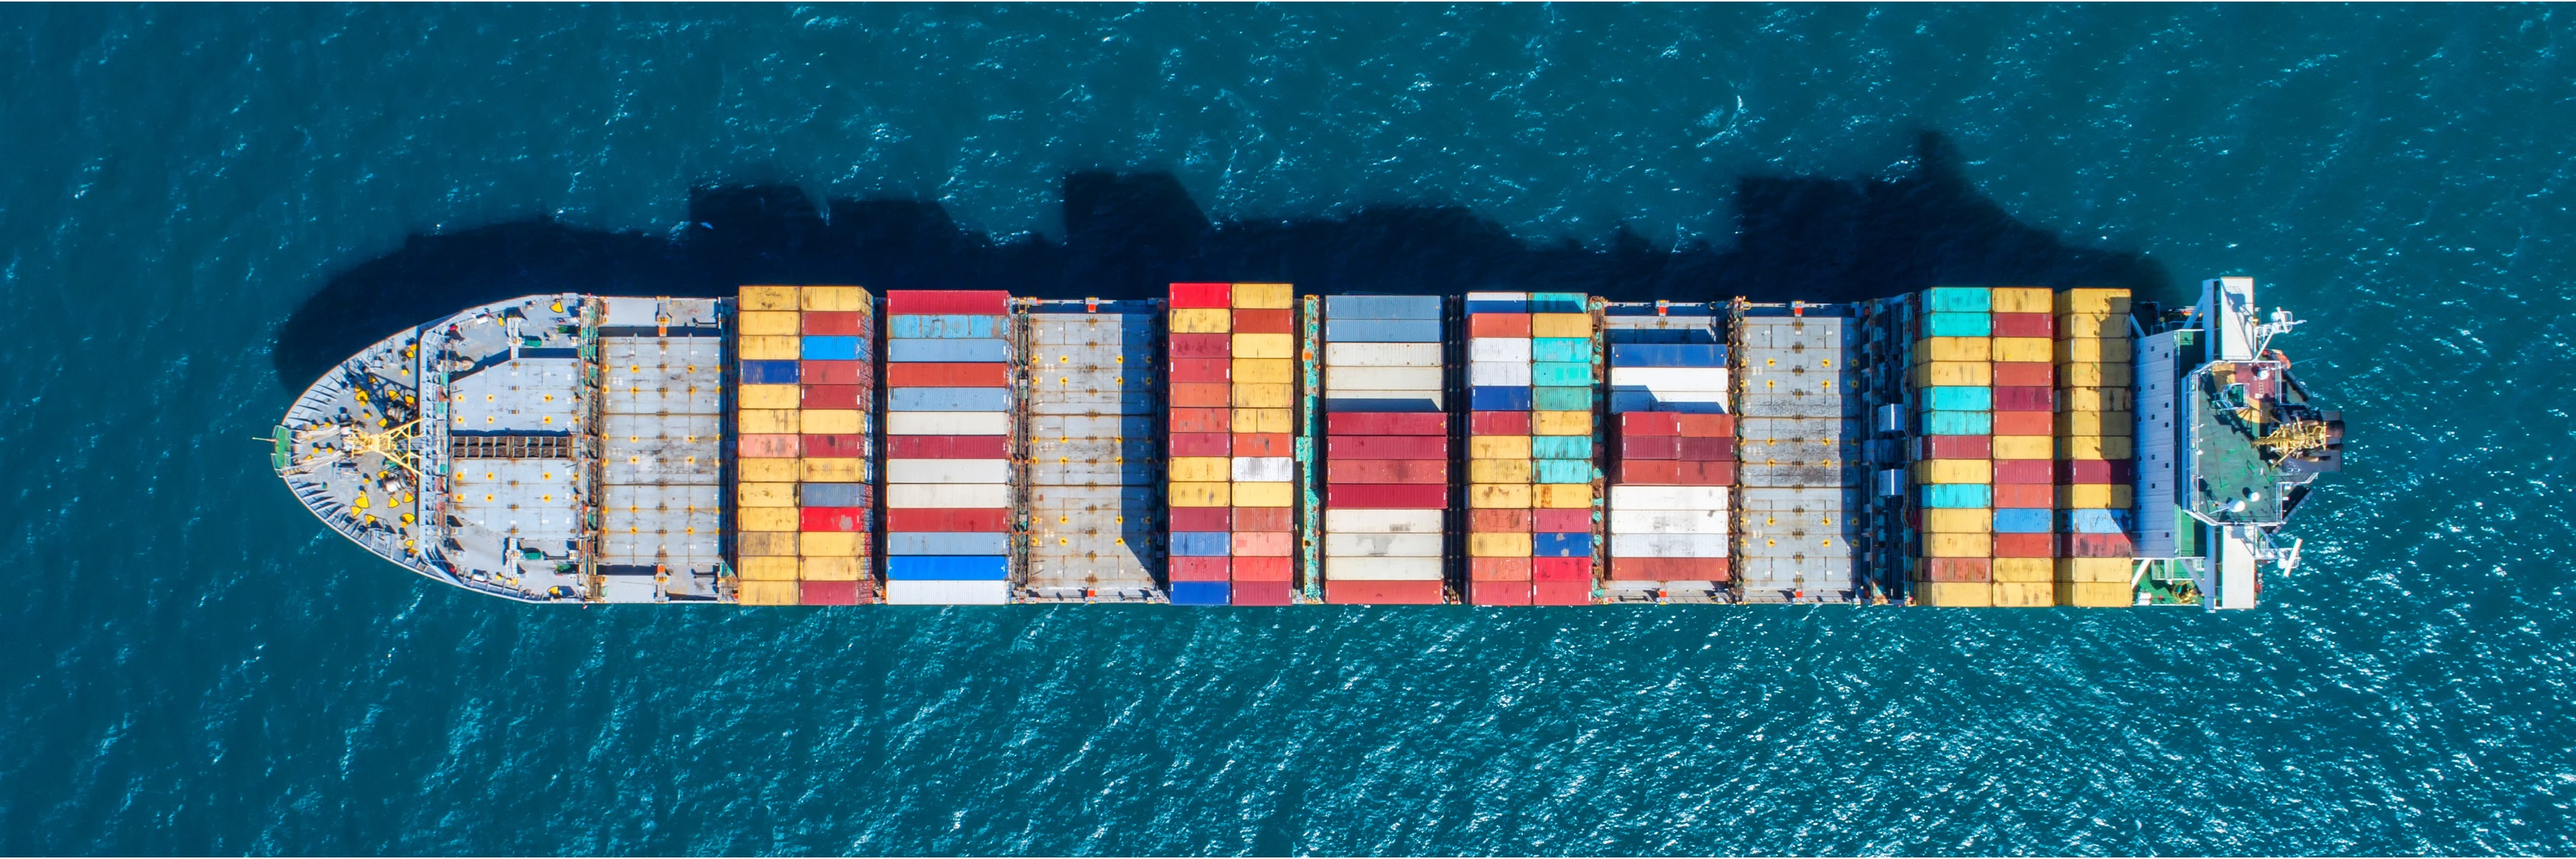 NotPetya Caused Maersk to Lose Hundreds of Millions in US Dollars